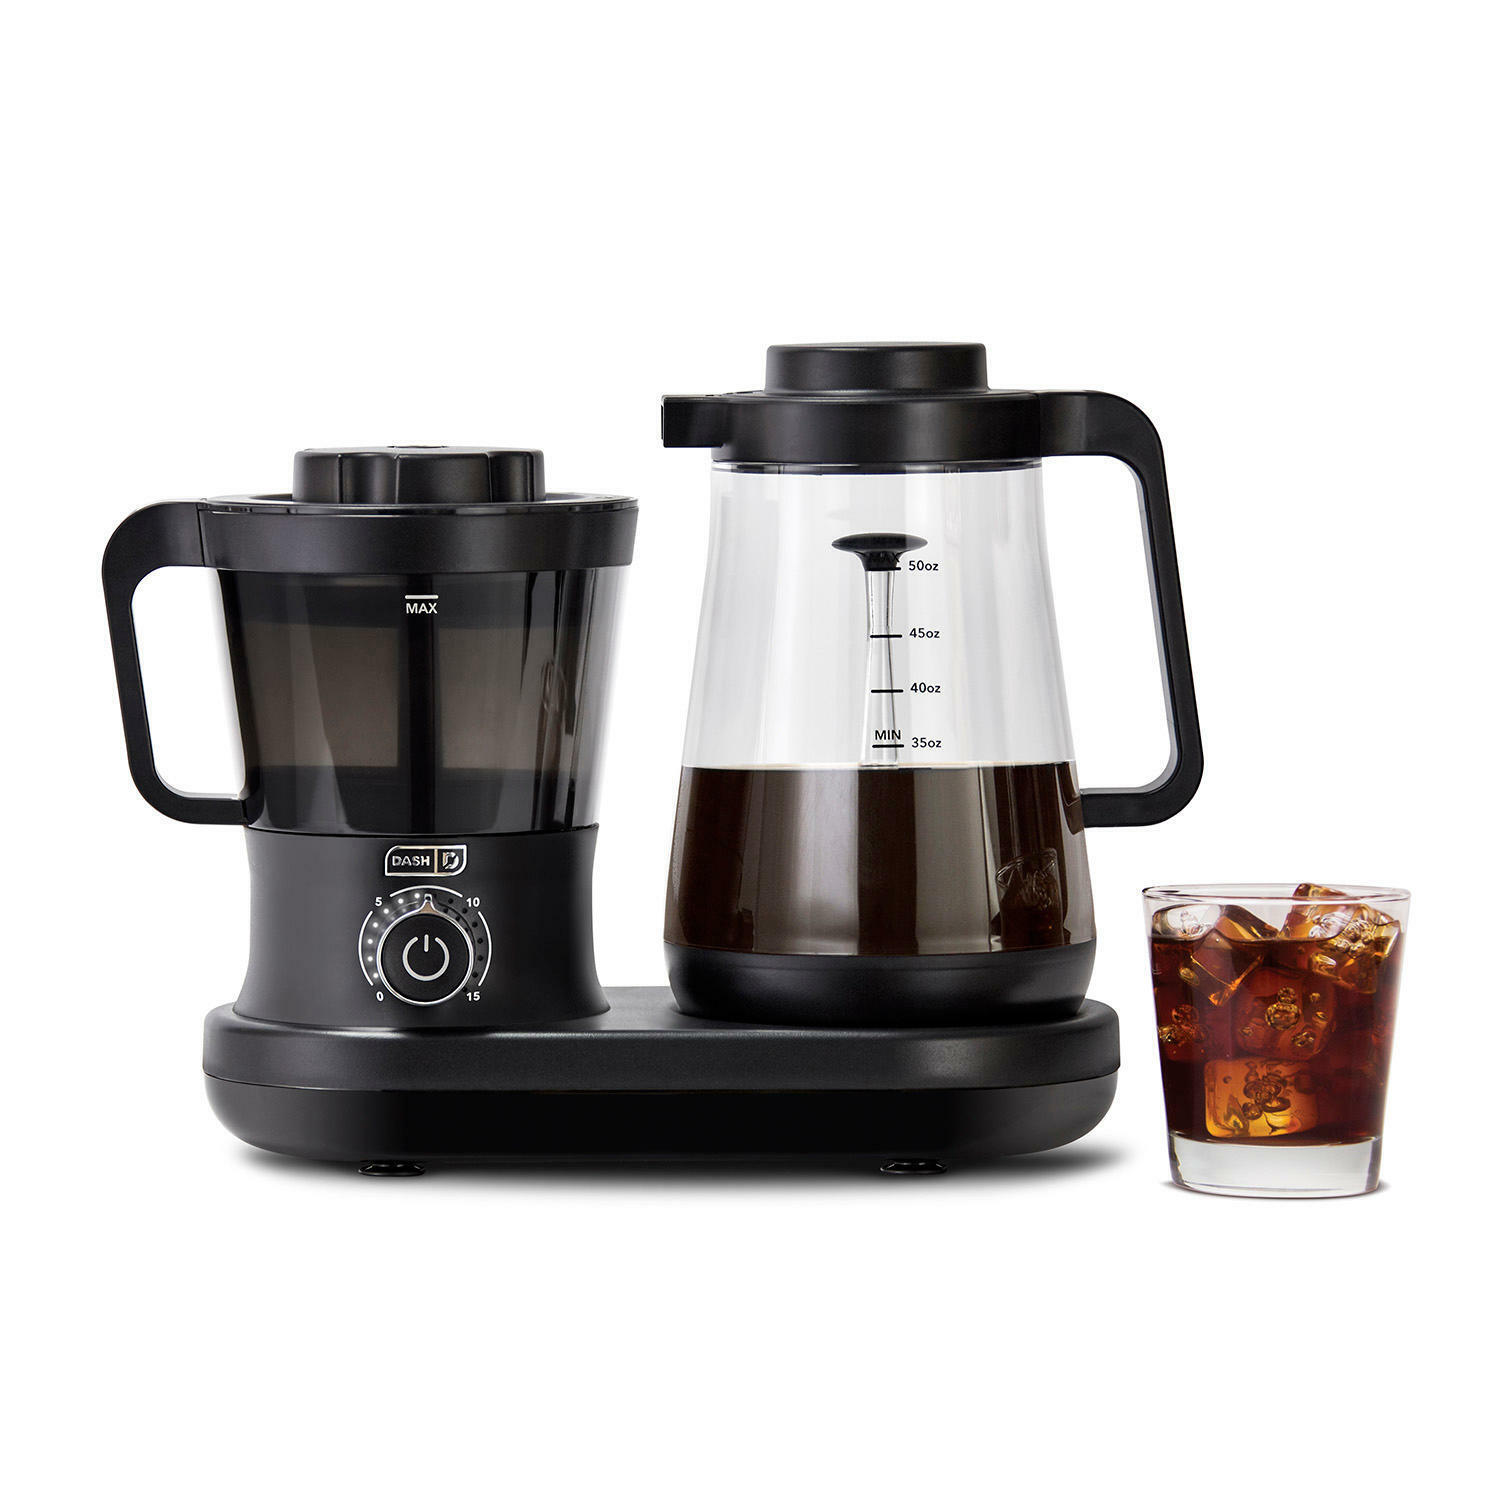 Dash Rapid Cold Brew Coffee Maker with Easy Pour Spout, 42 o